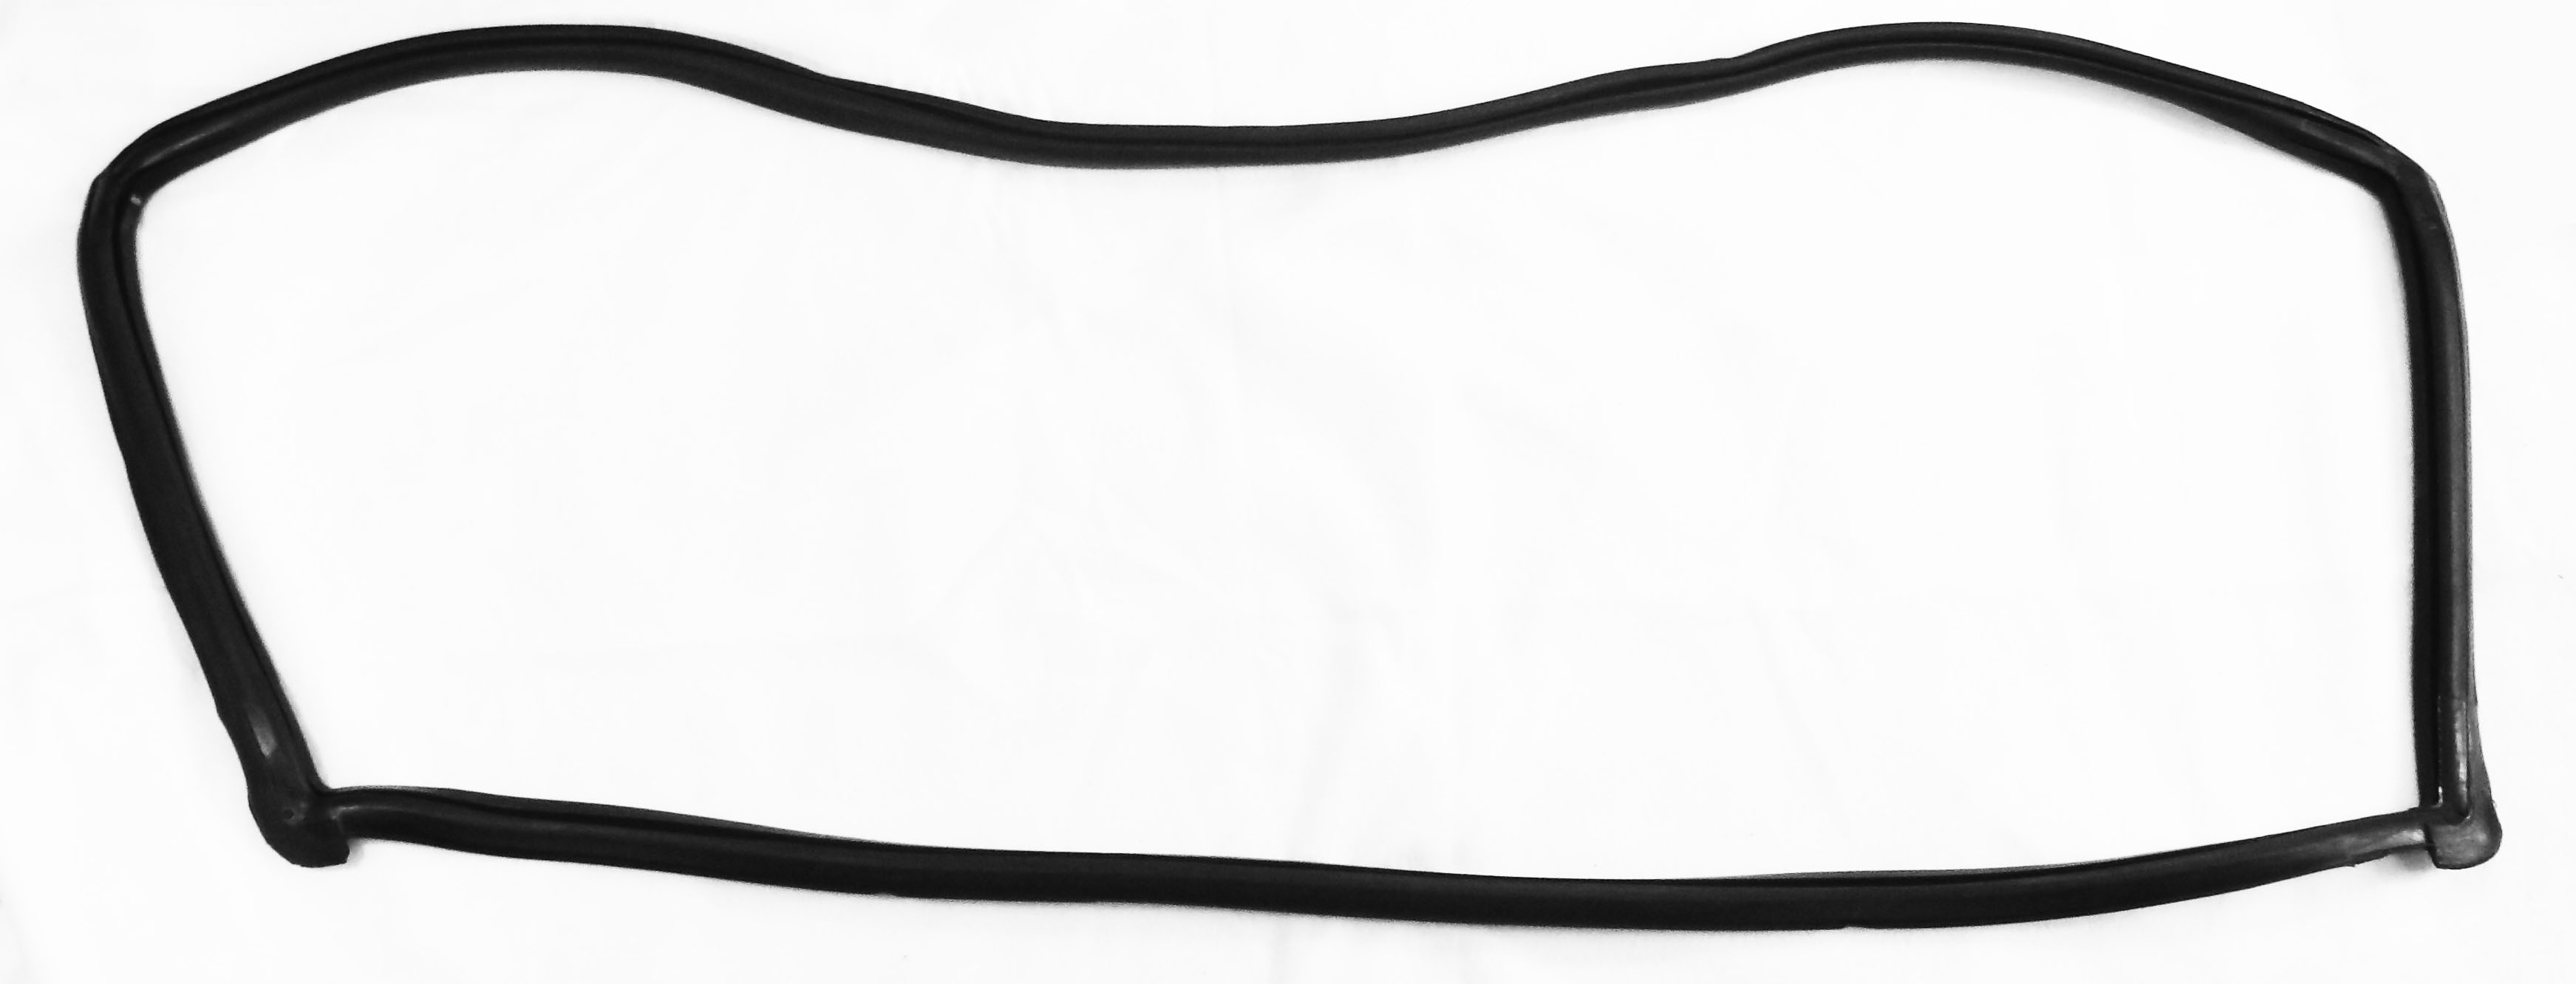 Windshield Channel For 1955-1957 Pontiac Convertible